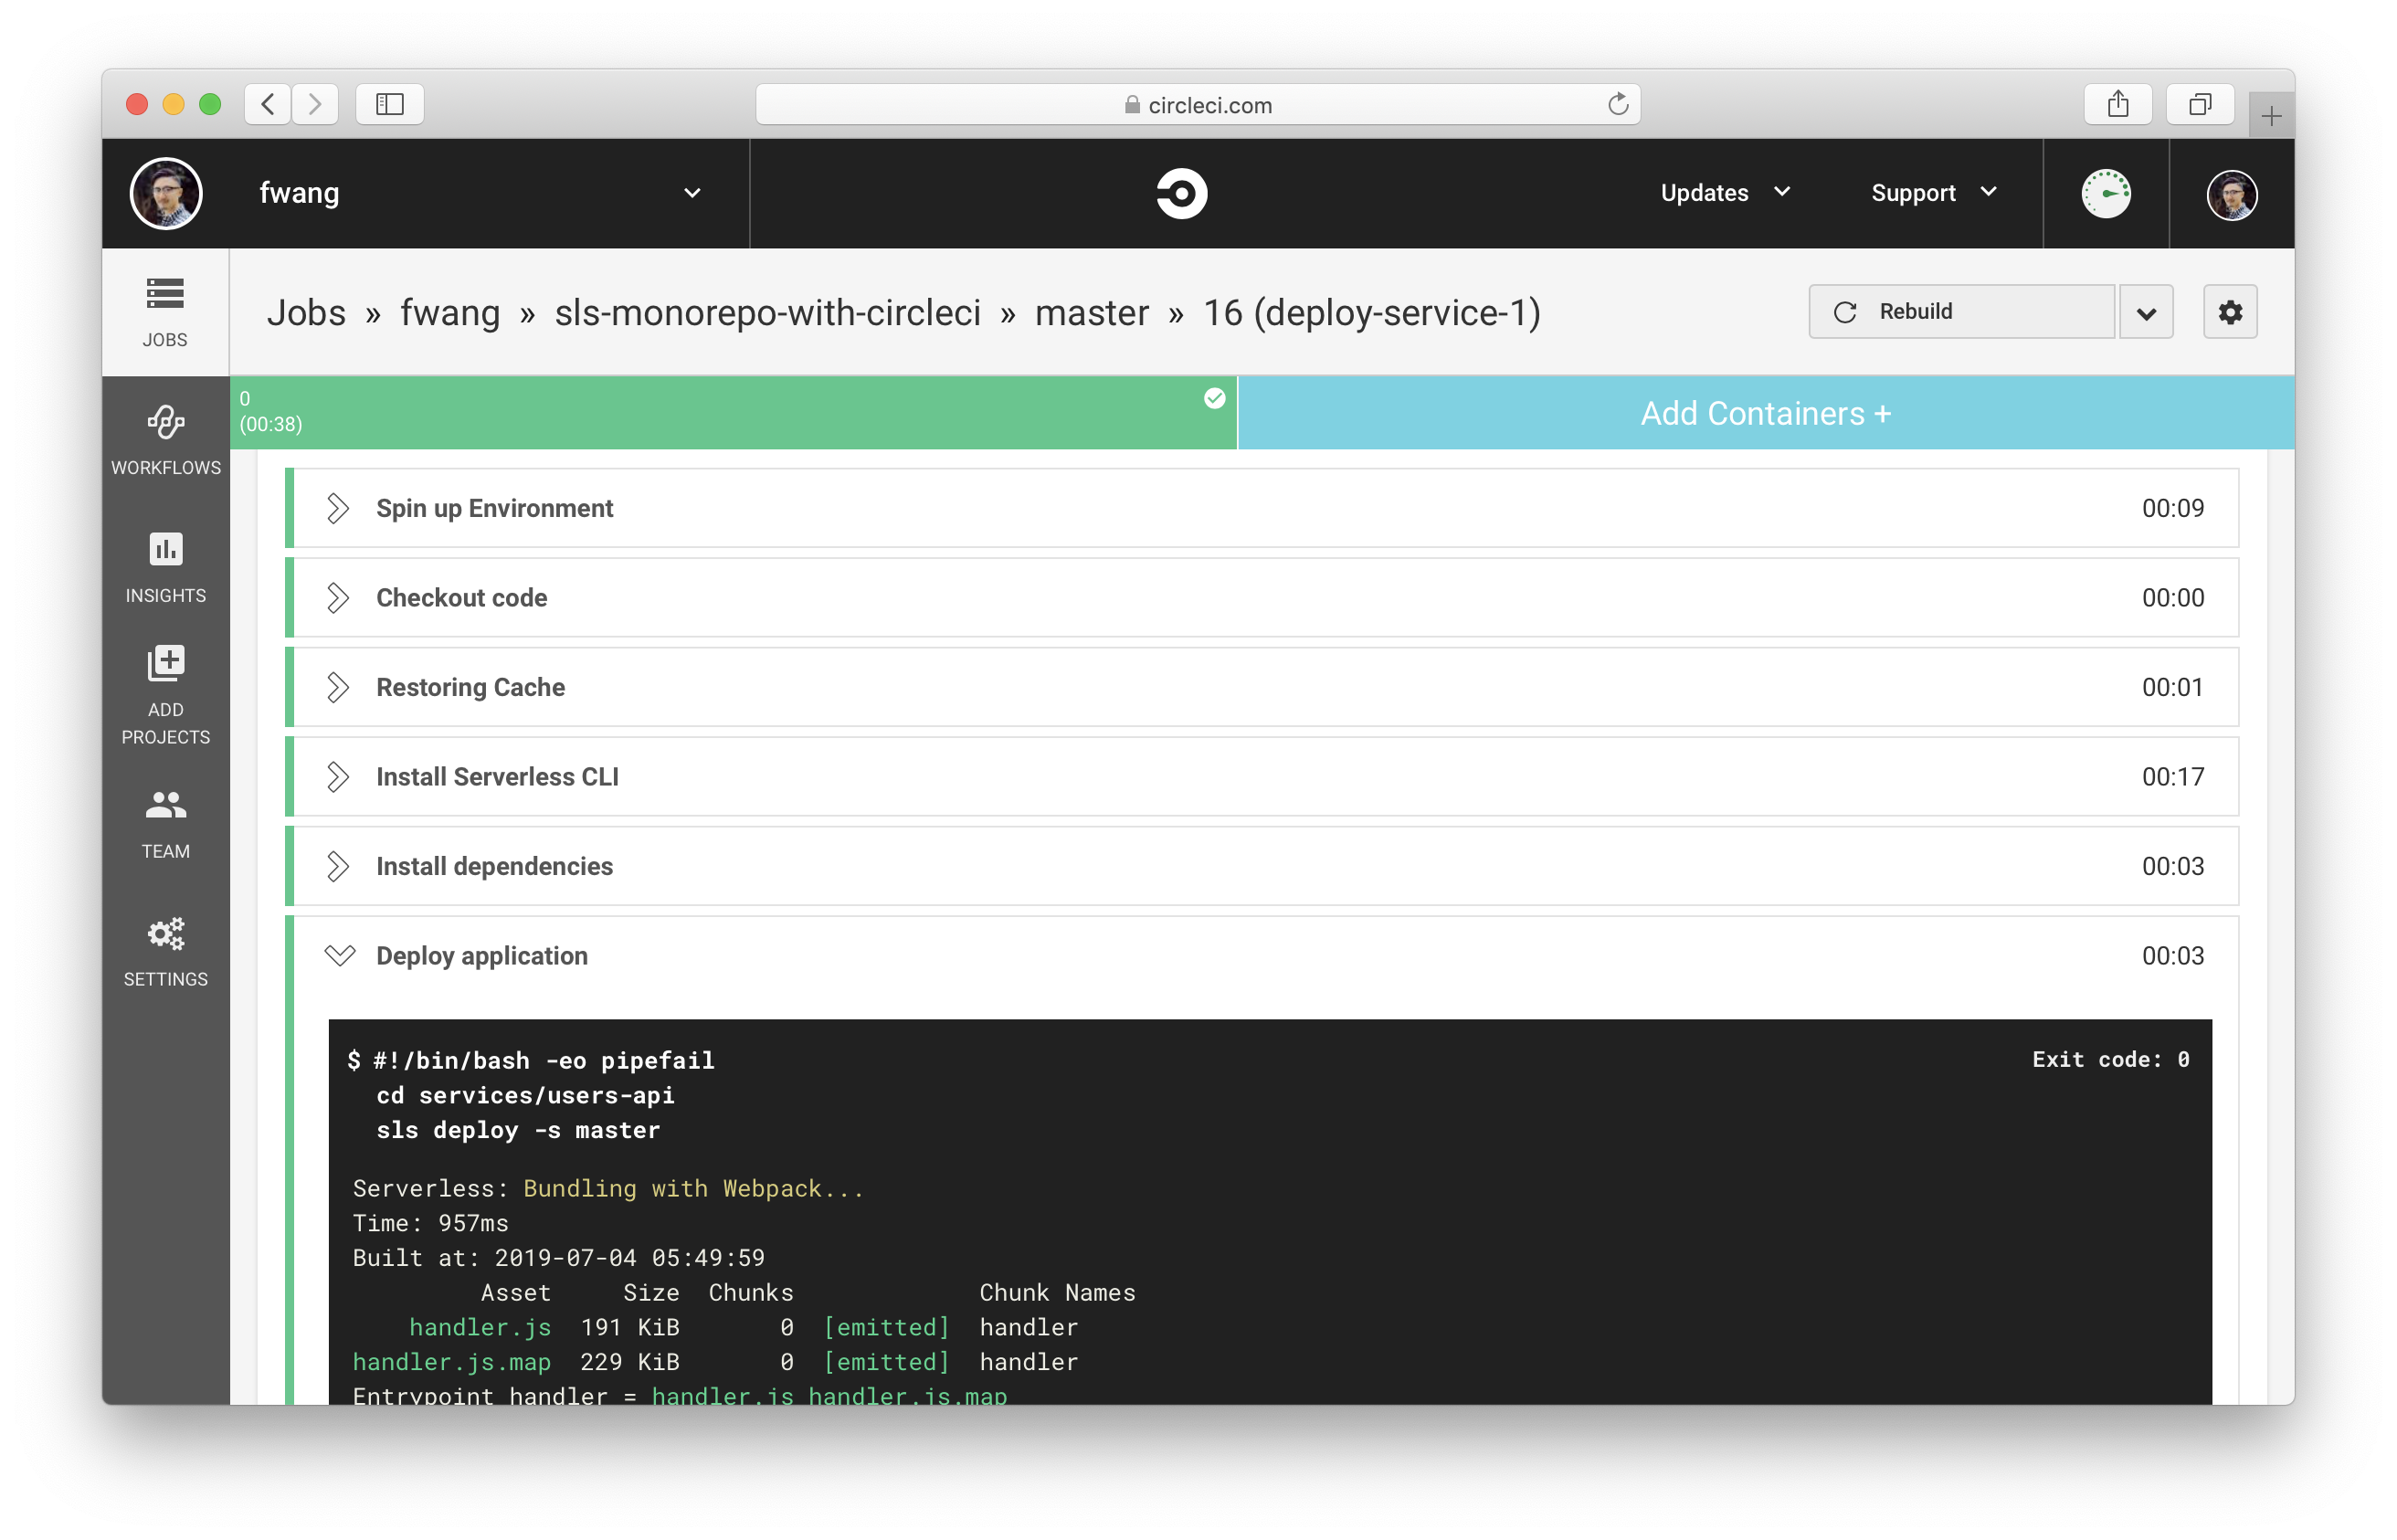 View build logs in CircleCI